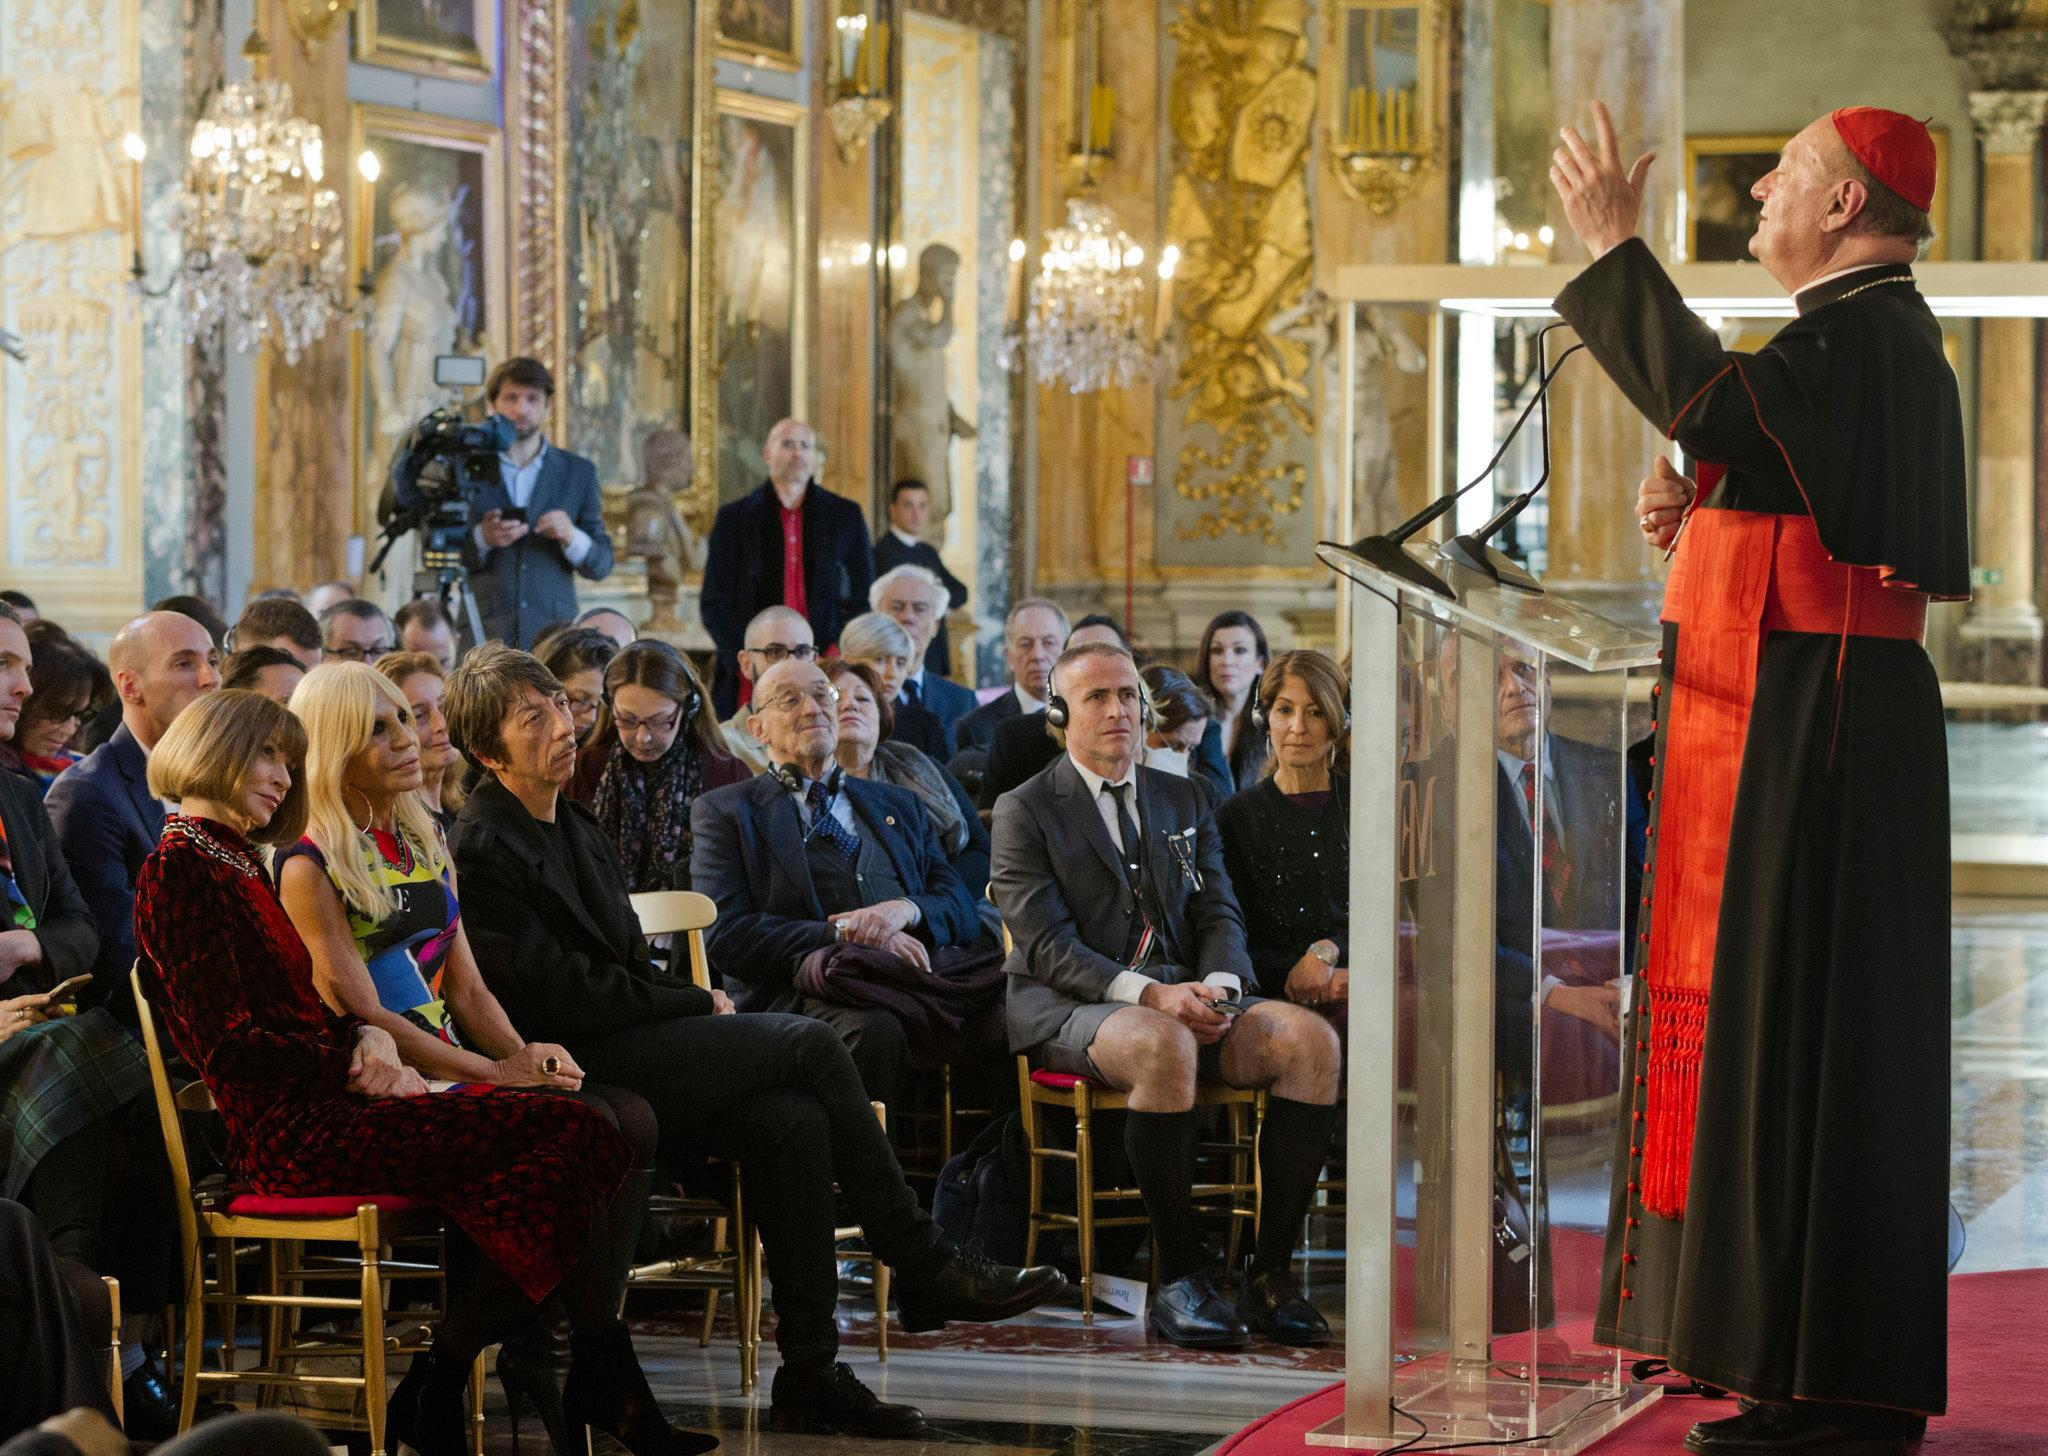 Cardinal Gianfranco Ravasi adresses the fashion faithful (Photo: Domenico Stinellis/Associated Press via The New York Times)